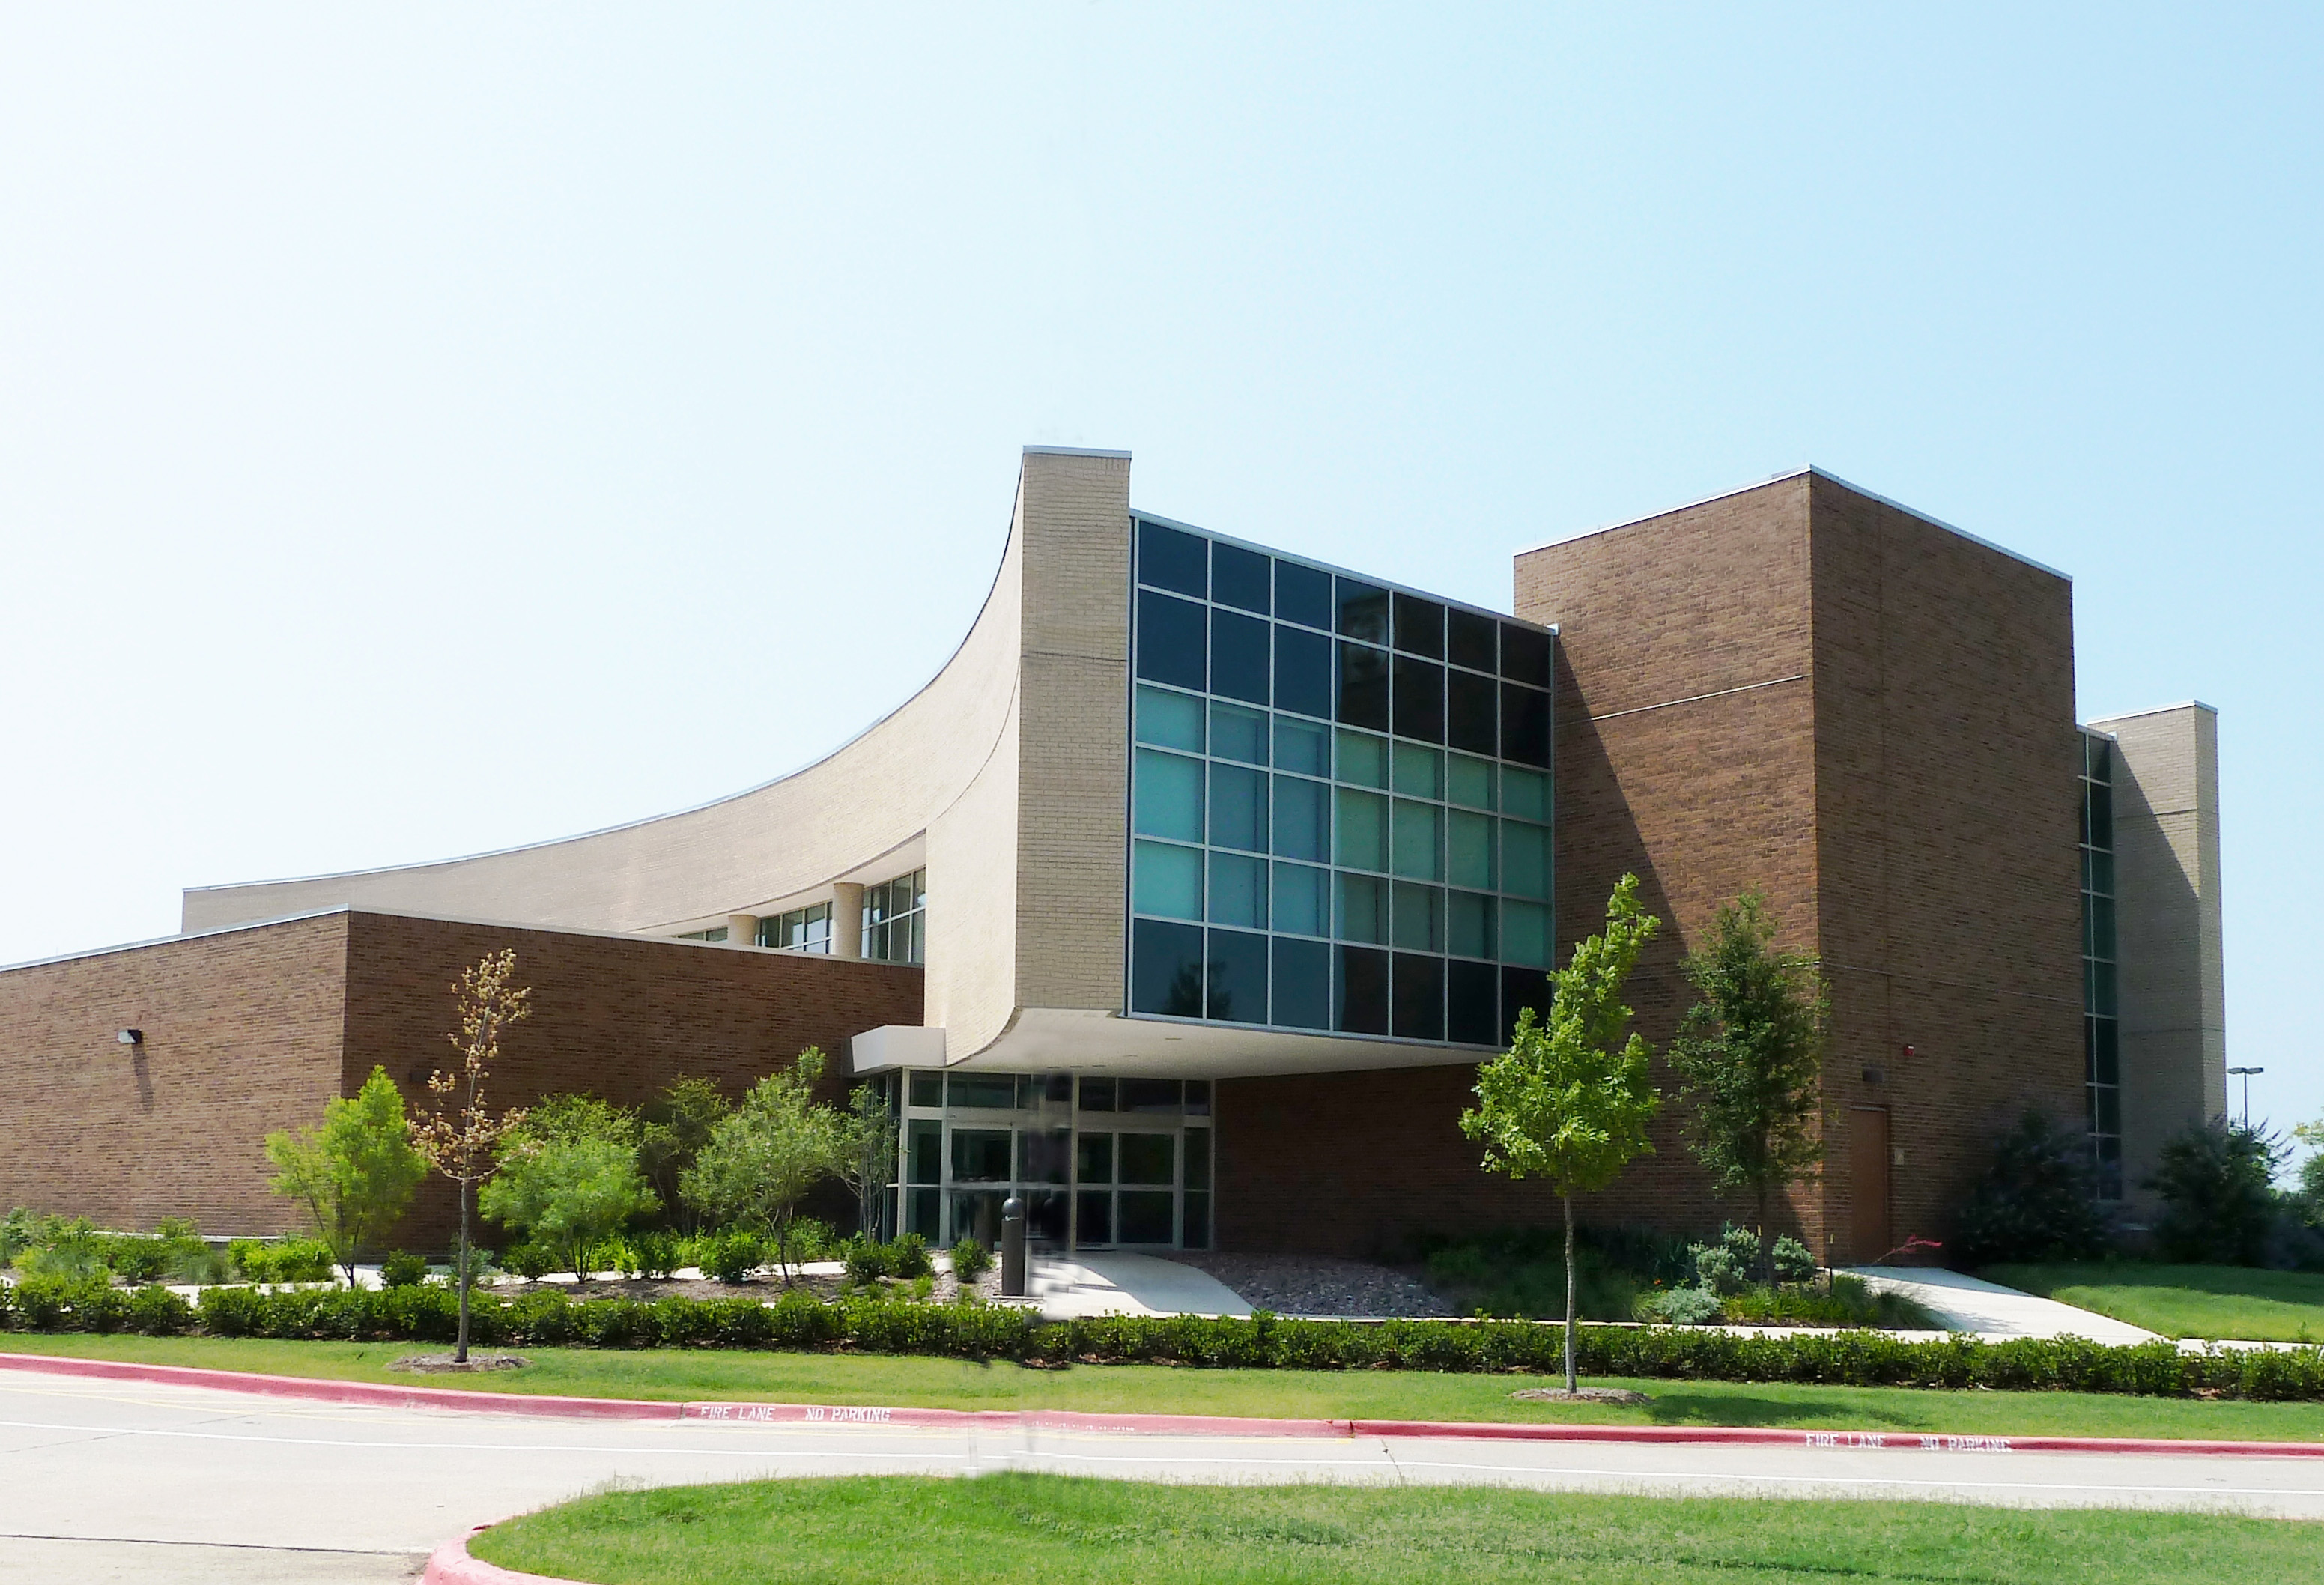 garland isd technology building relationship